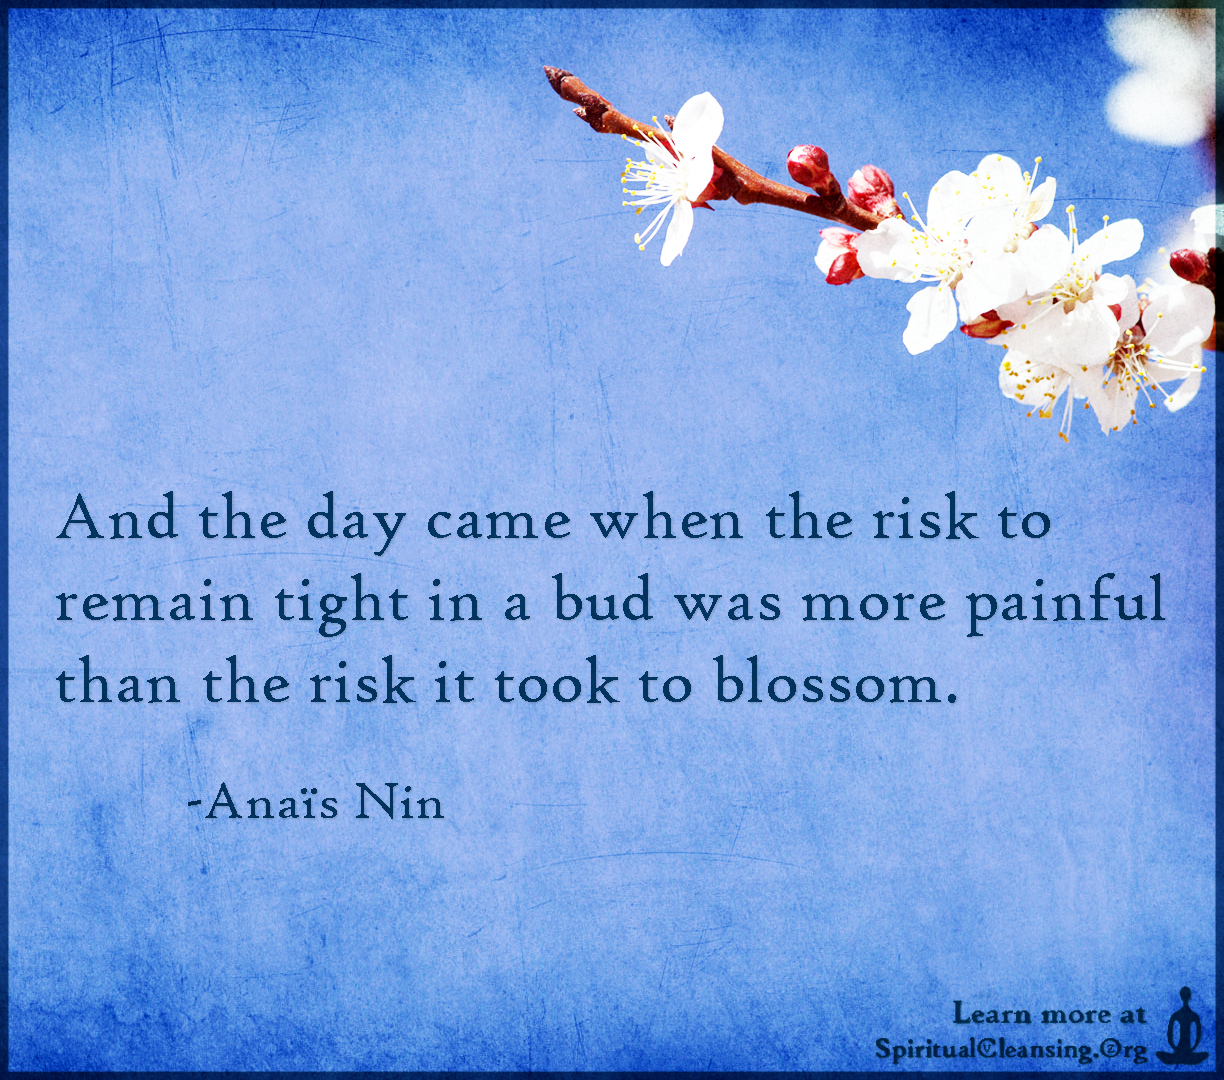 And the day came when the risk to remain tight in a bud was more